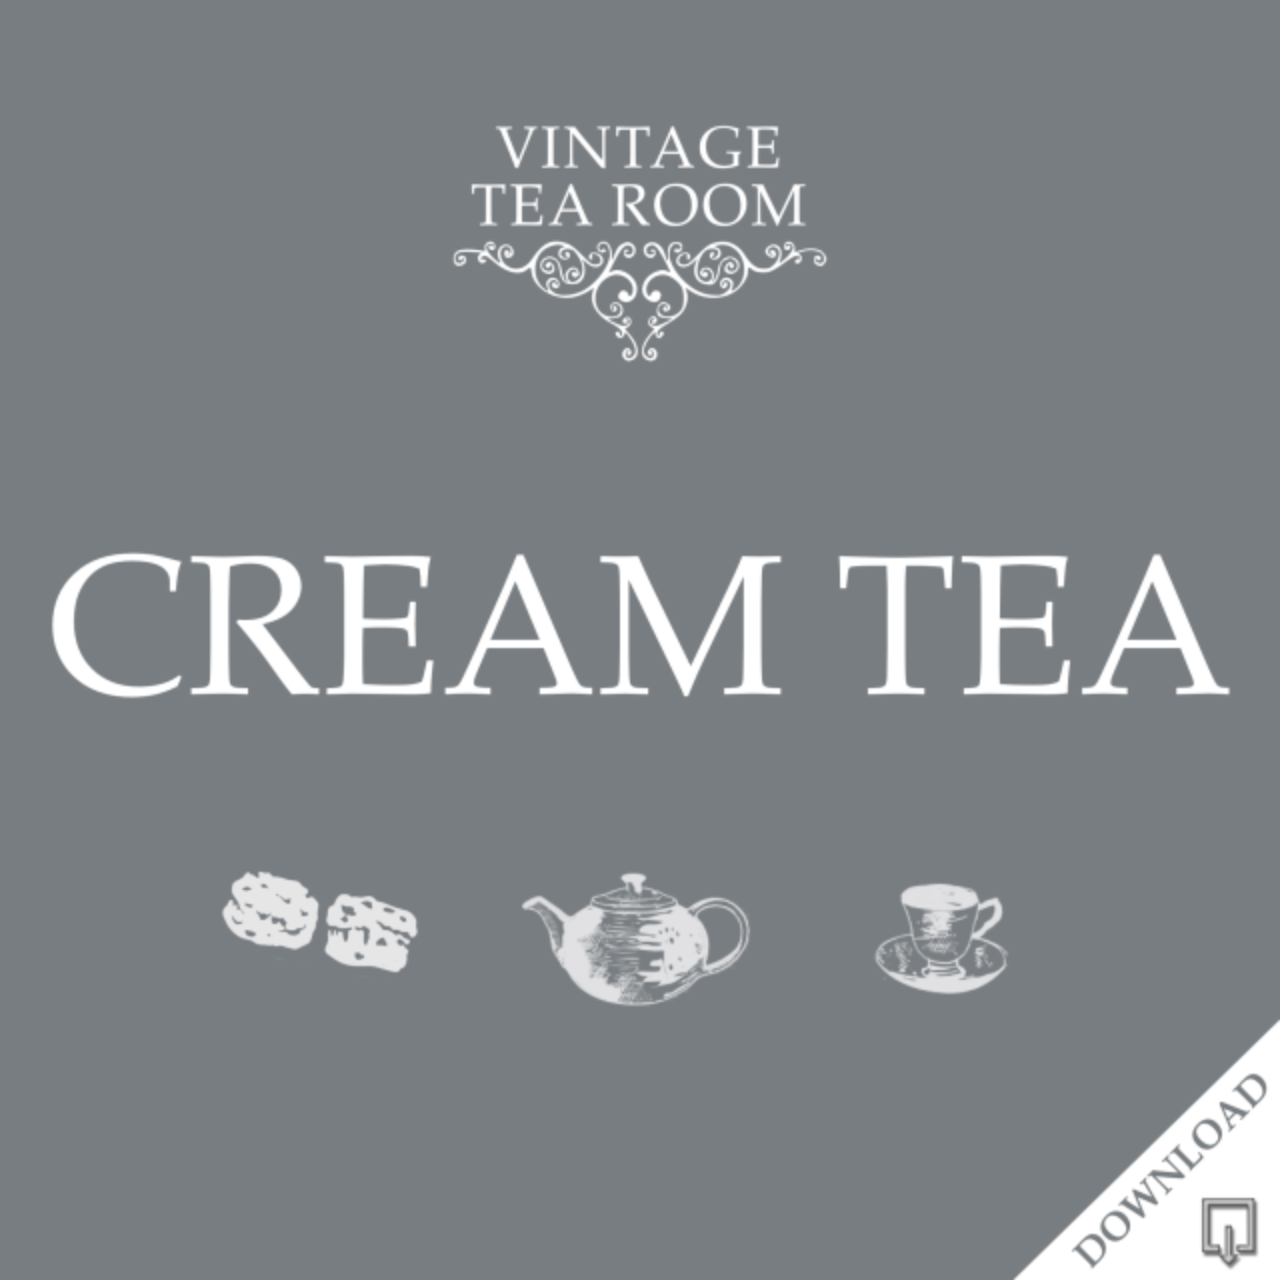 Vintage Cream Tea For One - Downloadable Voucher